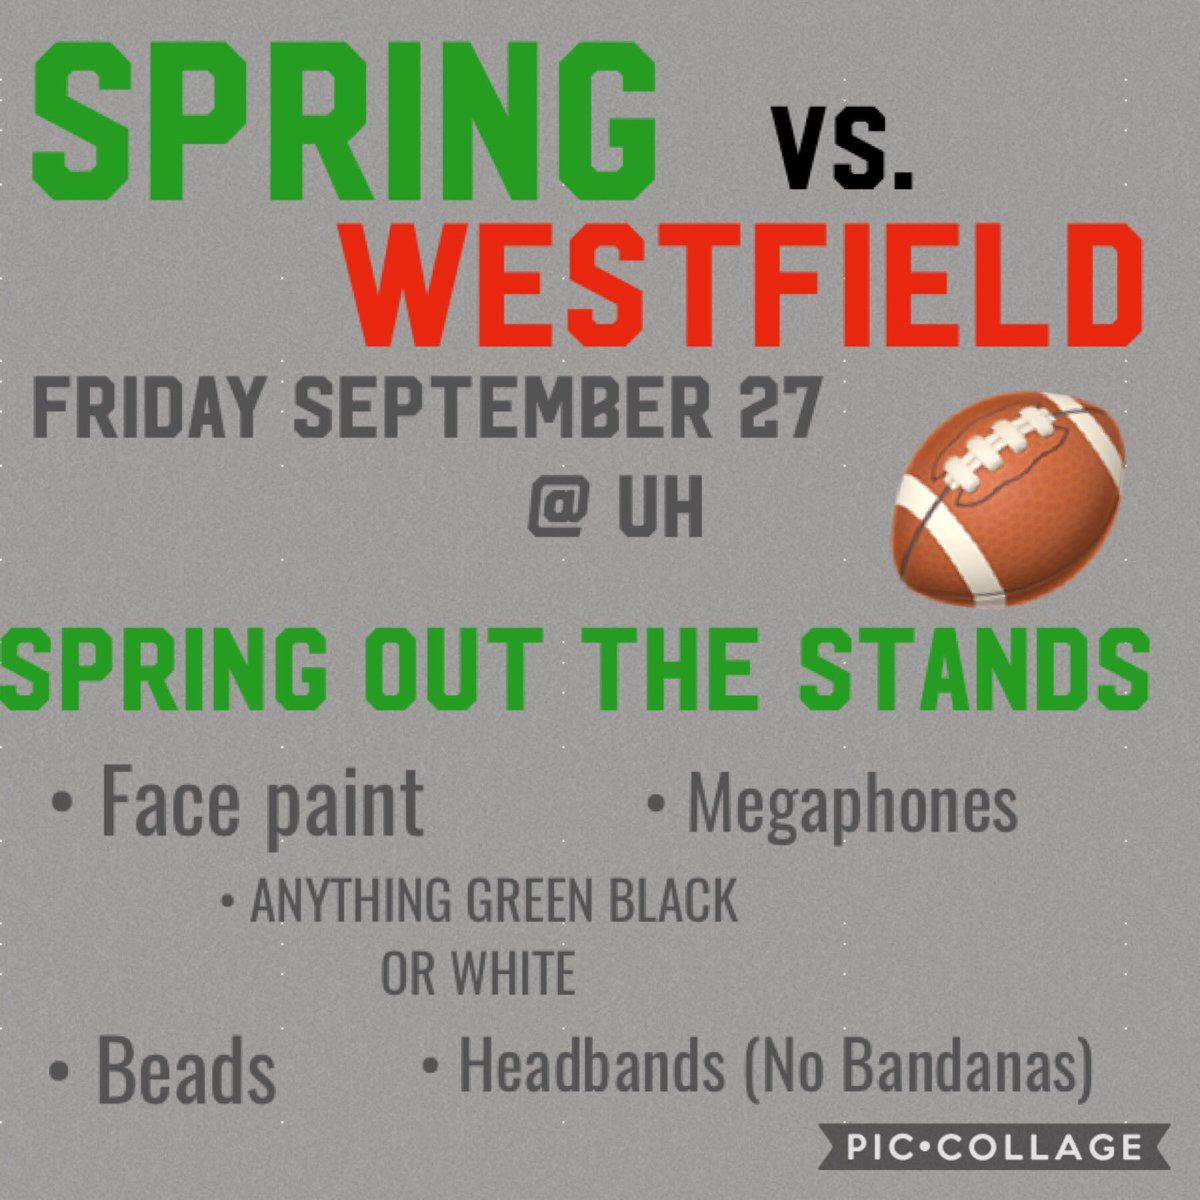 Friday Spring vs. Westfield ! We're going to spring out the school and the stands friday ! Make sure you have your spirit gear and support our lions football team !! 🦁🏈💚 #shs #classof2020 #mbybob #springfootball https://t.co/26U4hRKcLB